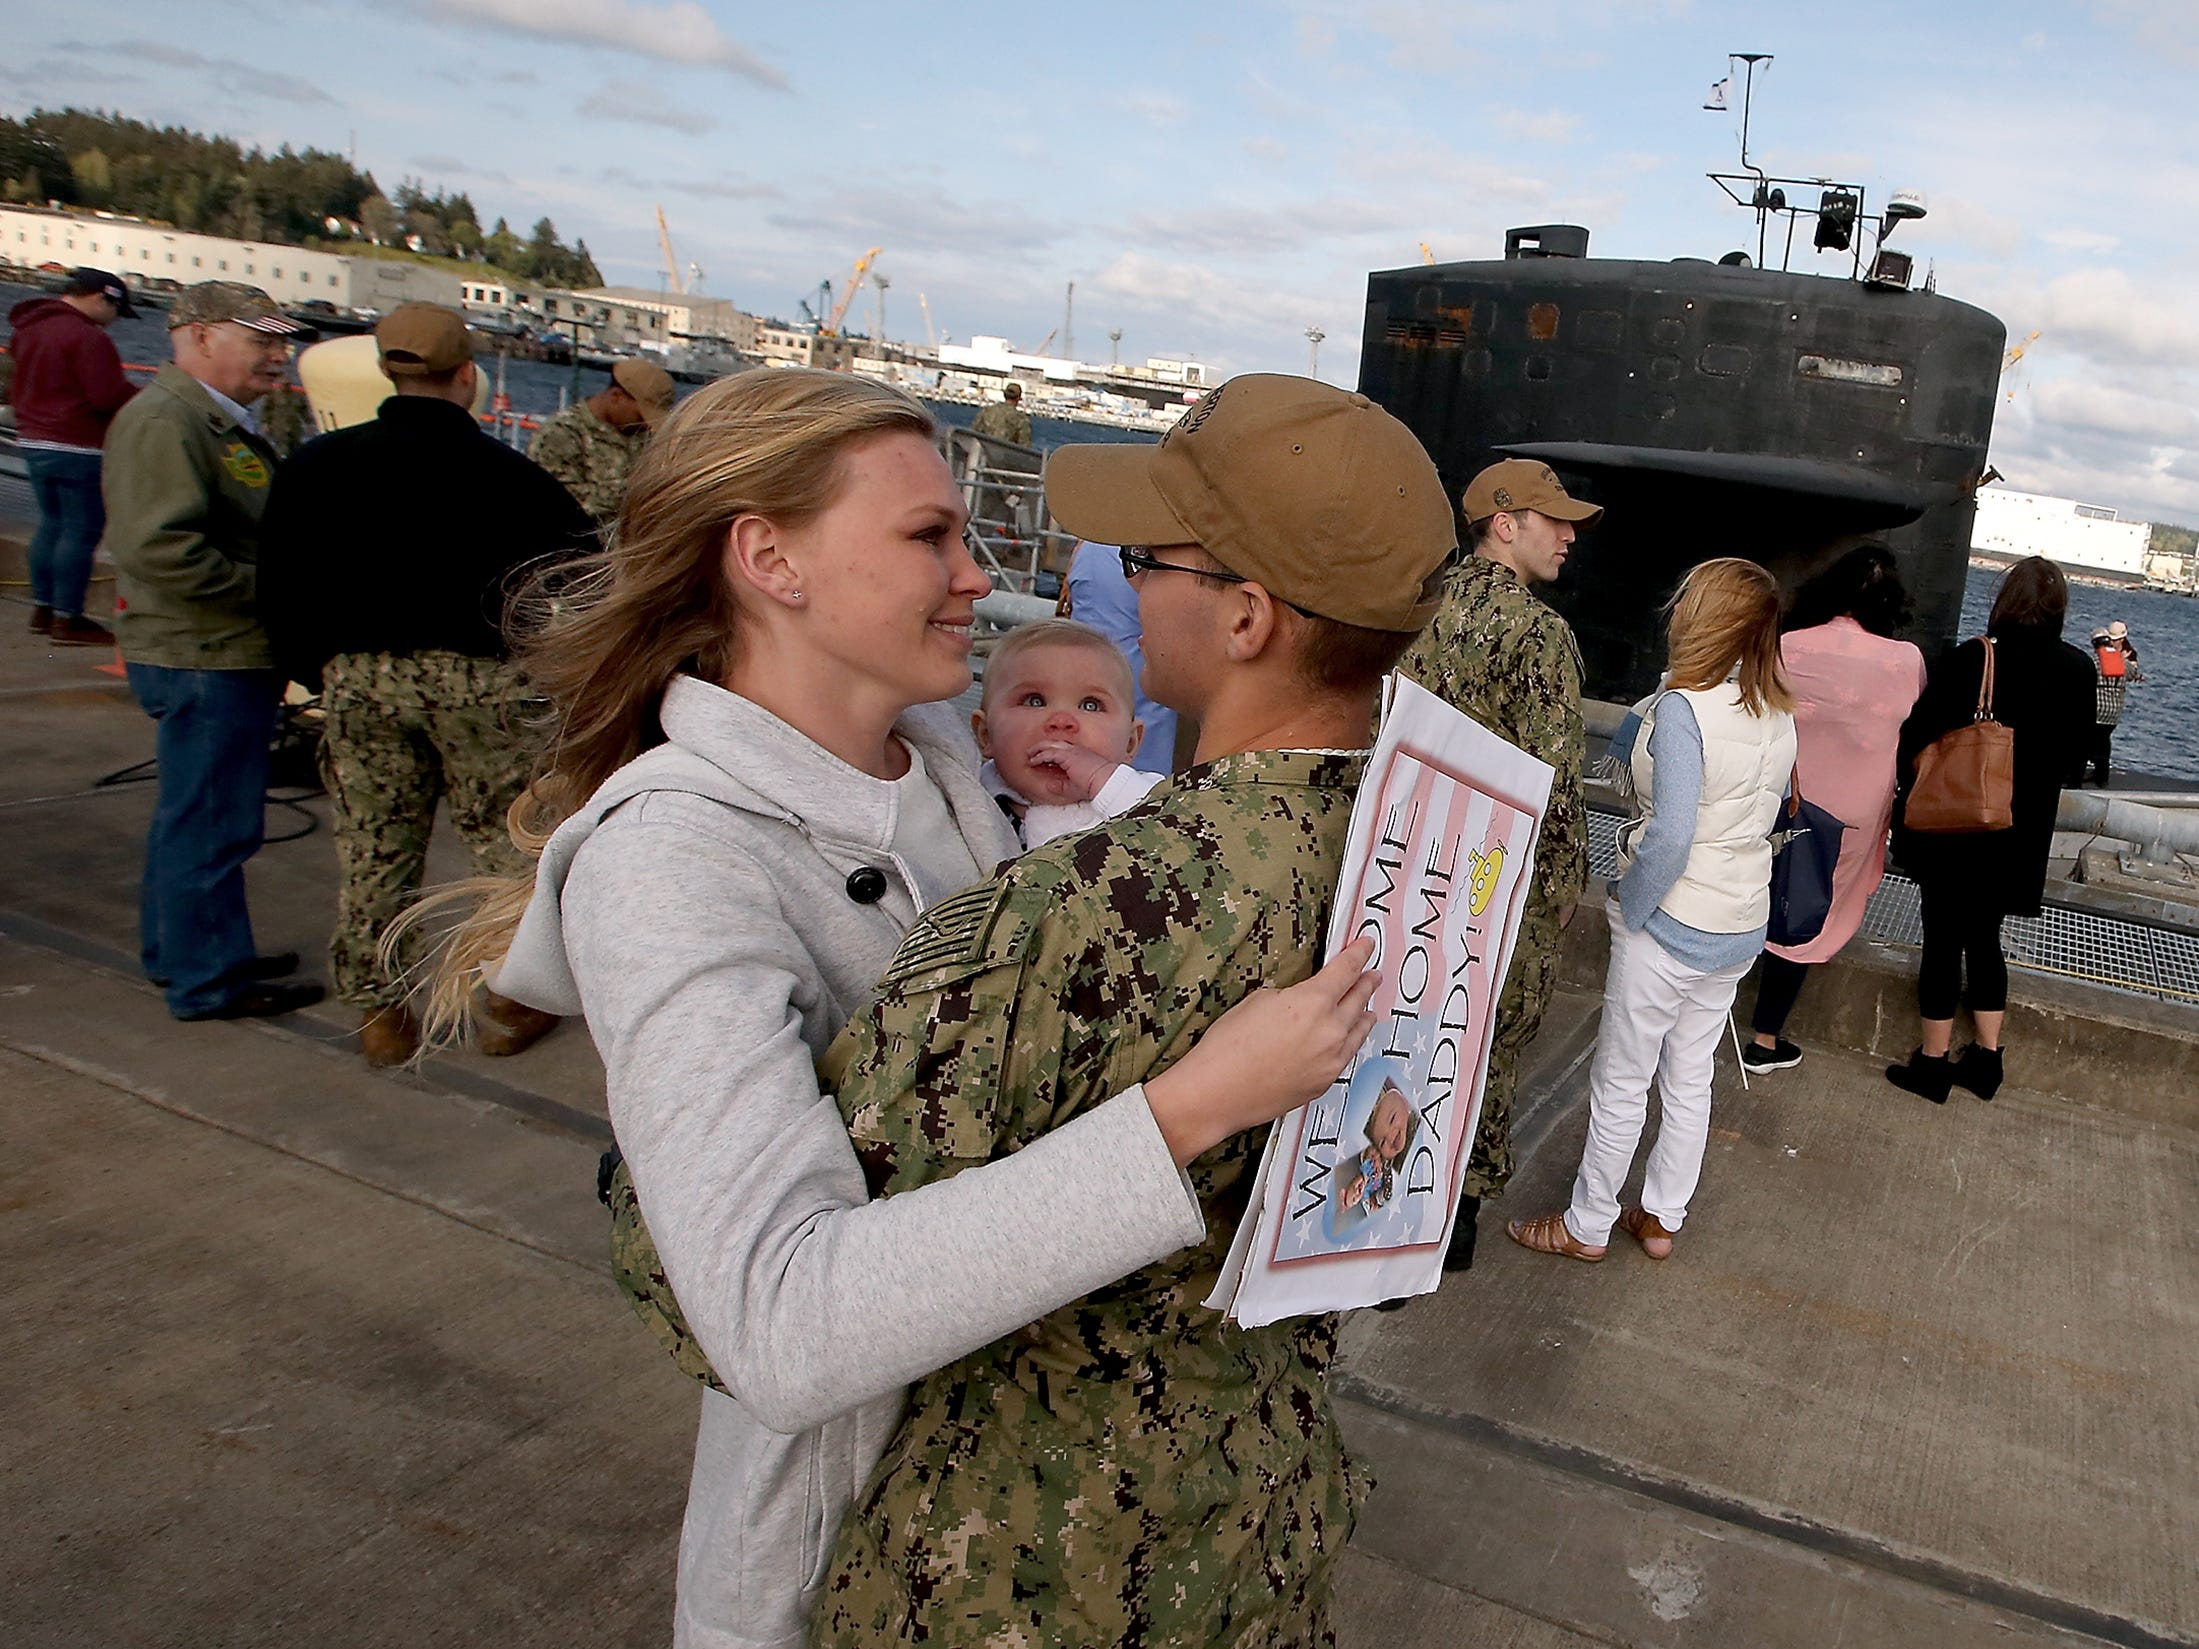 Breanna Squires embraces her husband Harley while 8-month-old daughter Olivia looks on after Harley disembarked the USS Bremerton at Naval Base Kitsap-Bremerton on Friday, April 27, 2018. The submarine is scheduled to begin the inactivation and decommissioning process at the Puget Sound Naval Shipyard in July